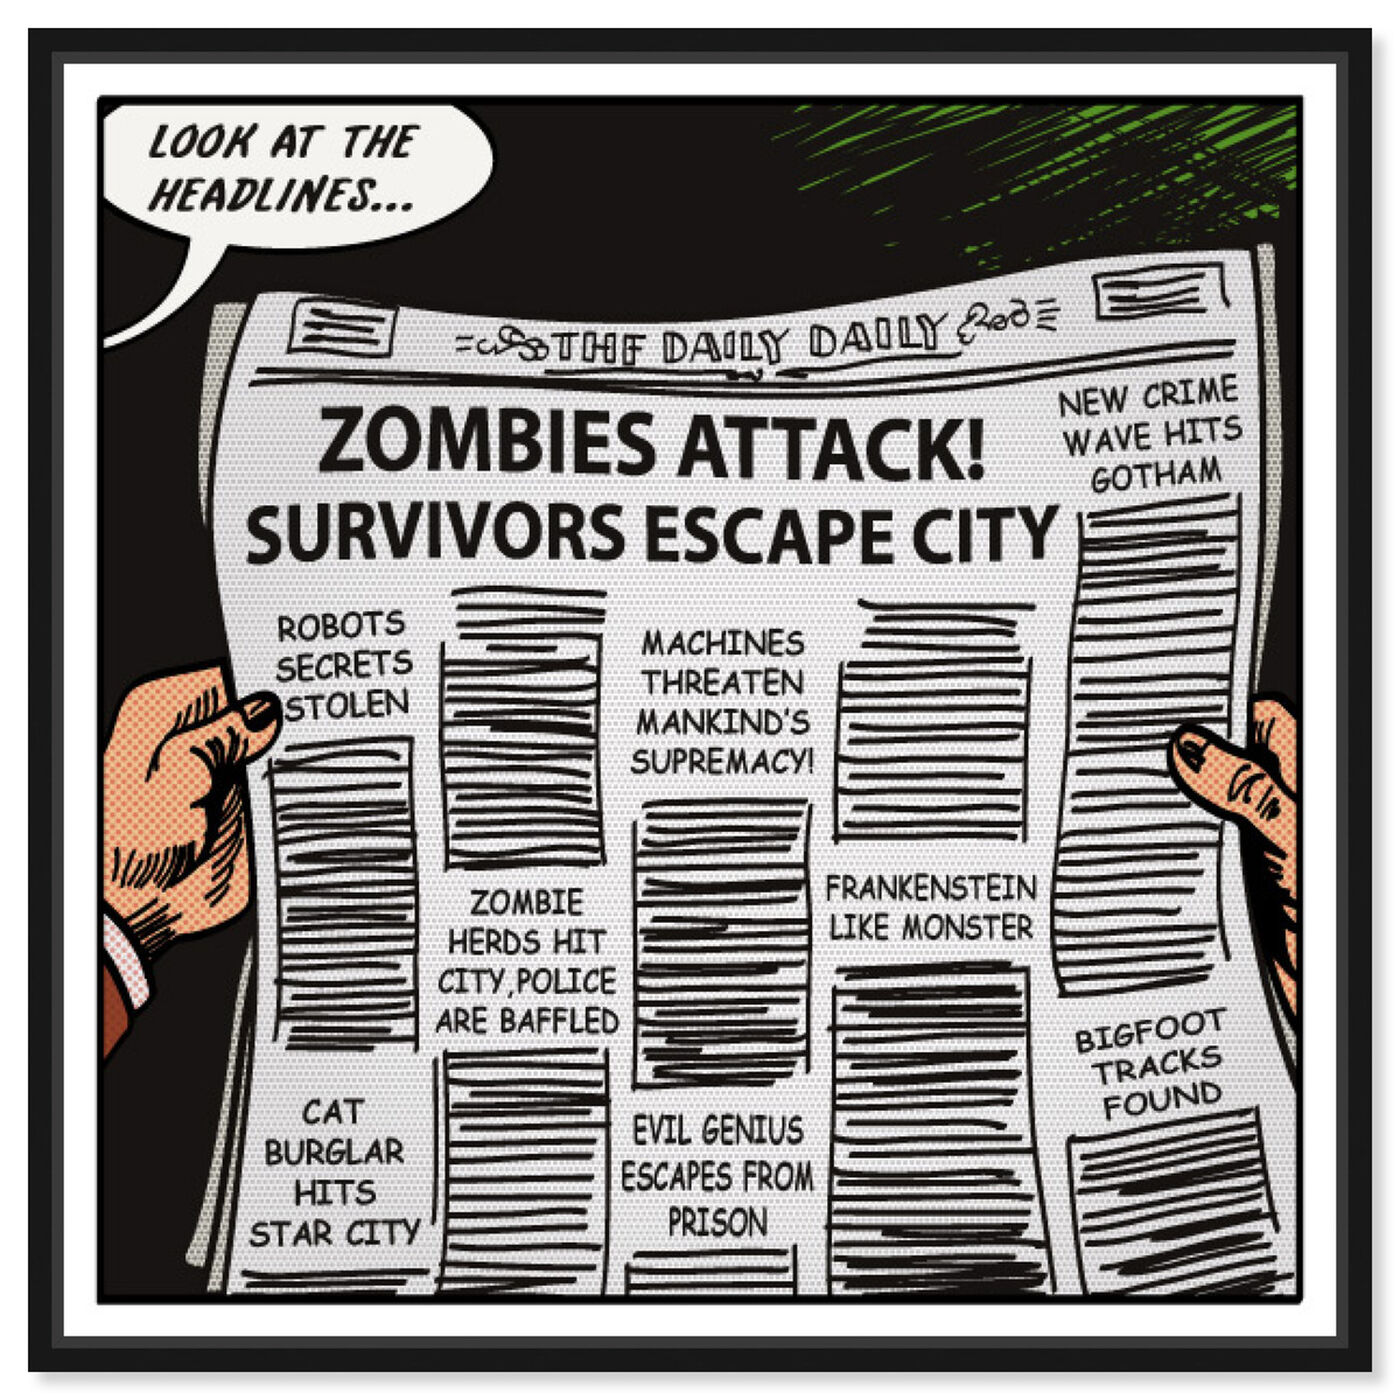 Front view of Look At The Headlines featuring advertising and comics art.